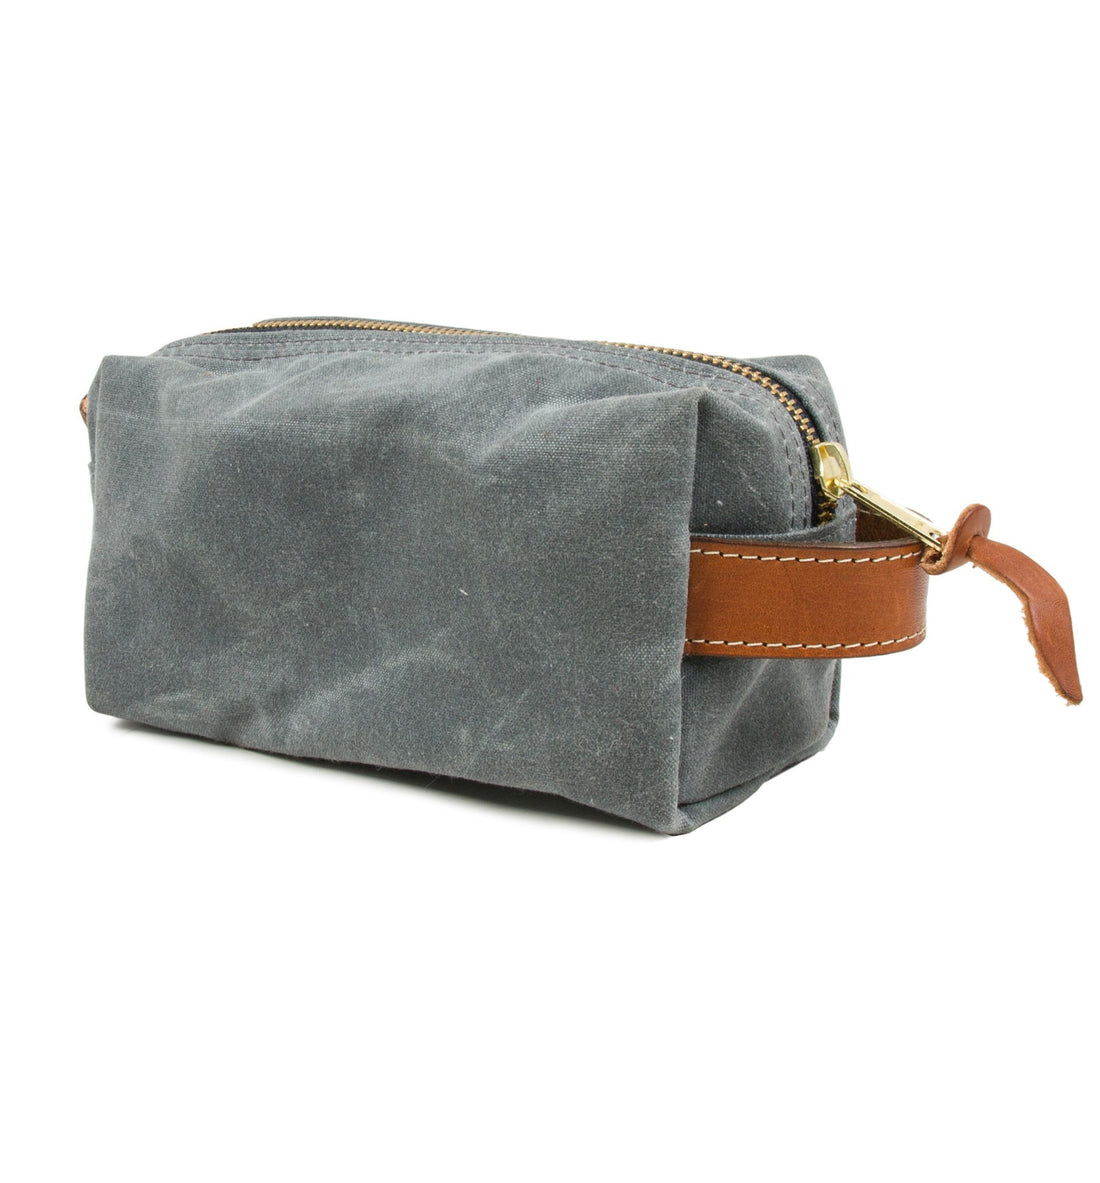 Owen & Fred Explore Waxed Canvas Shaving Kit Bag - Grooming - Iron and Resin